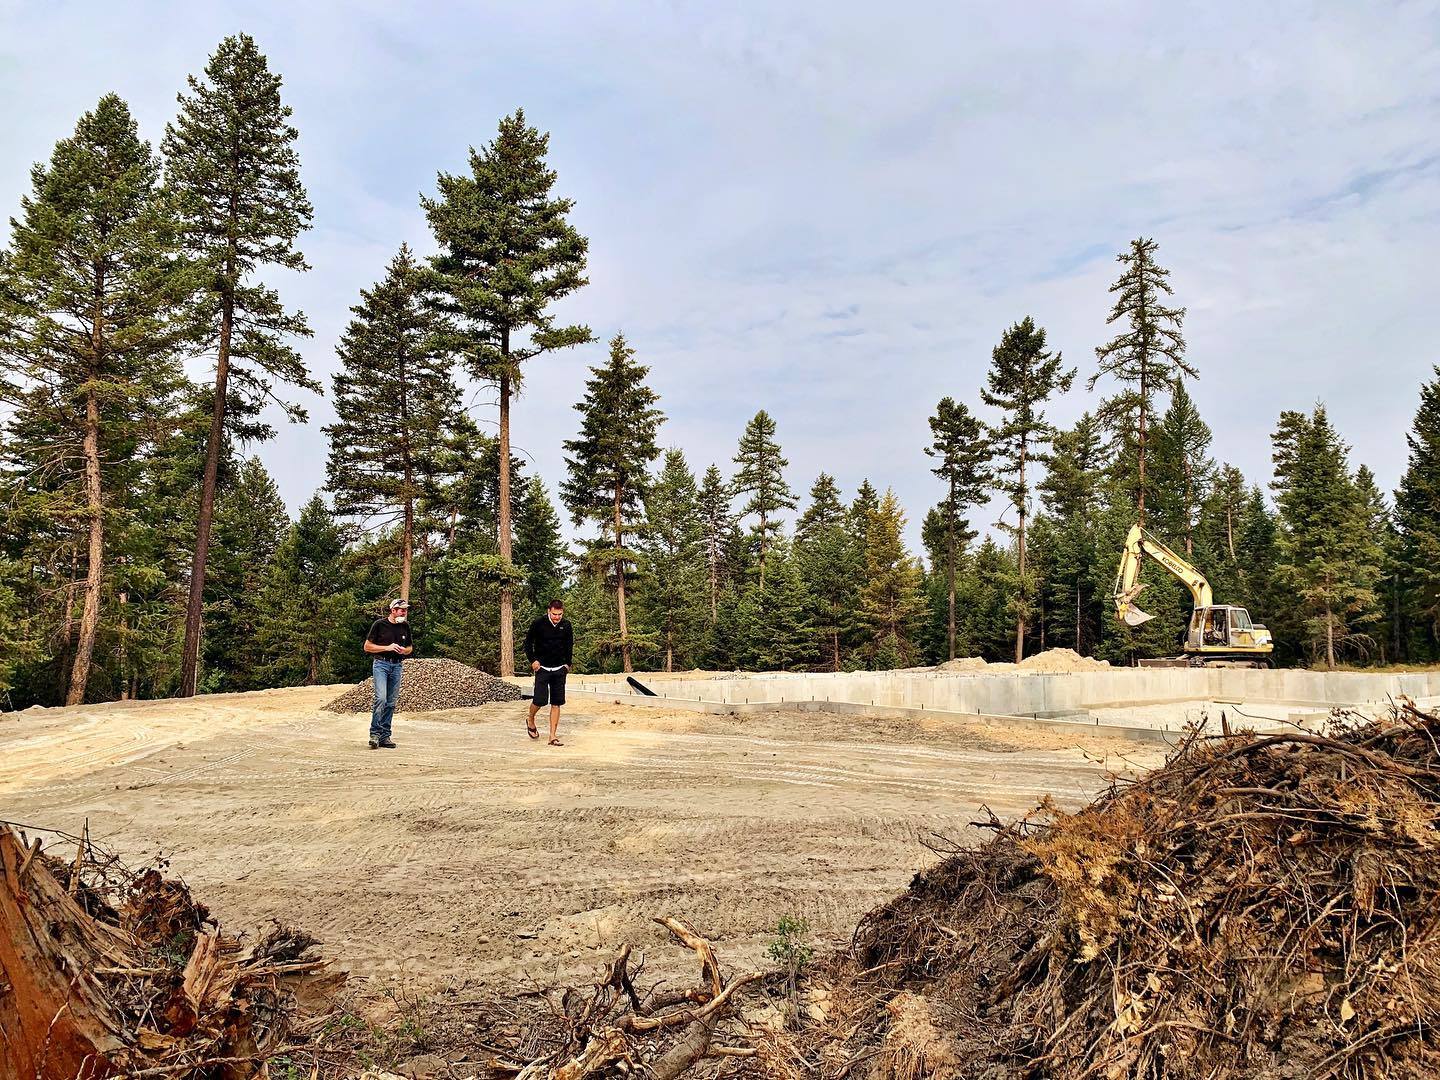 Backfilling (something about this reminds me of a moonscape!) whitefish custom home builder